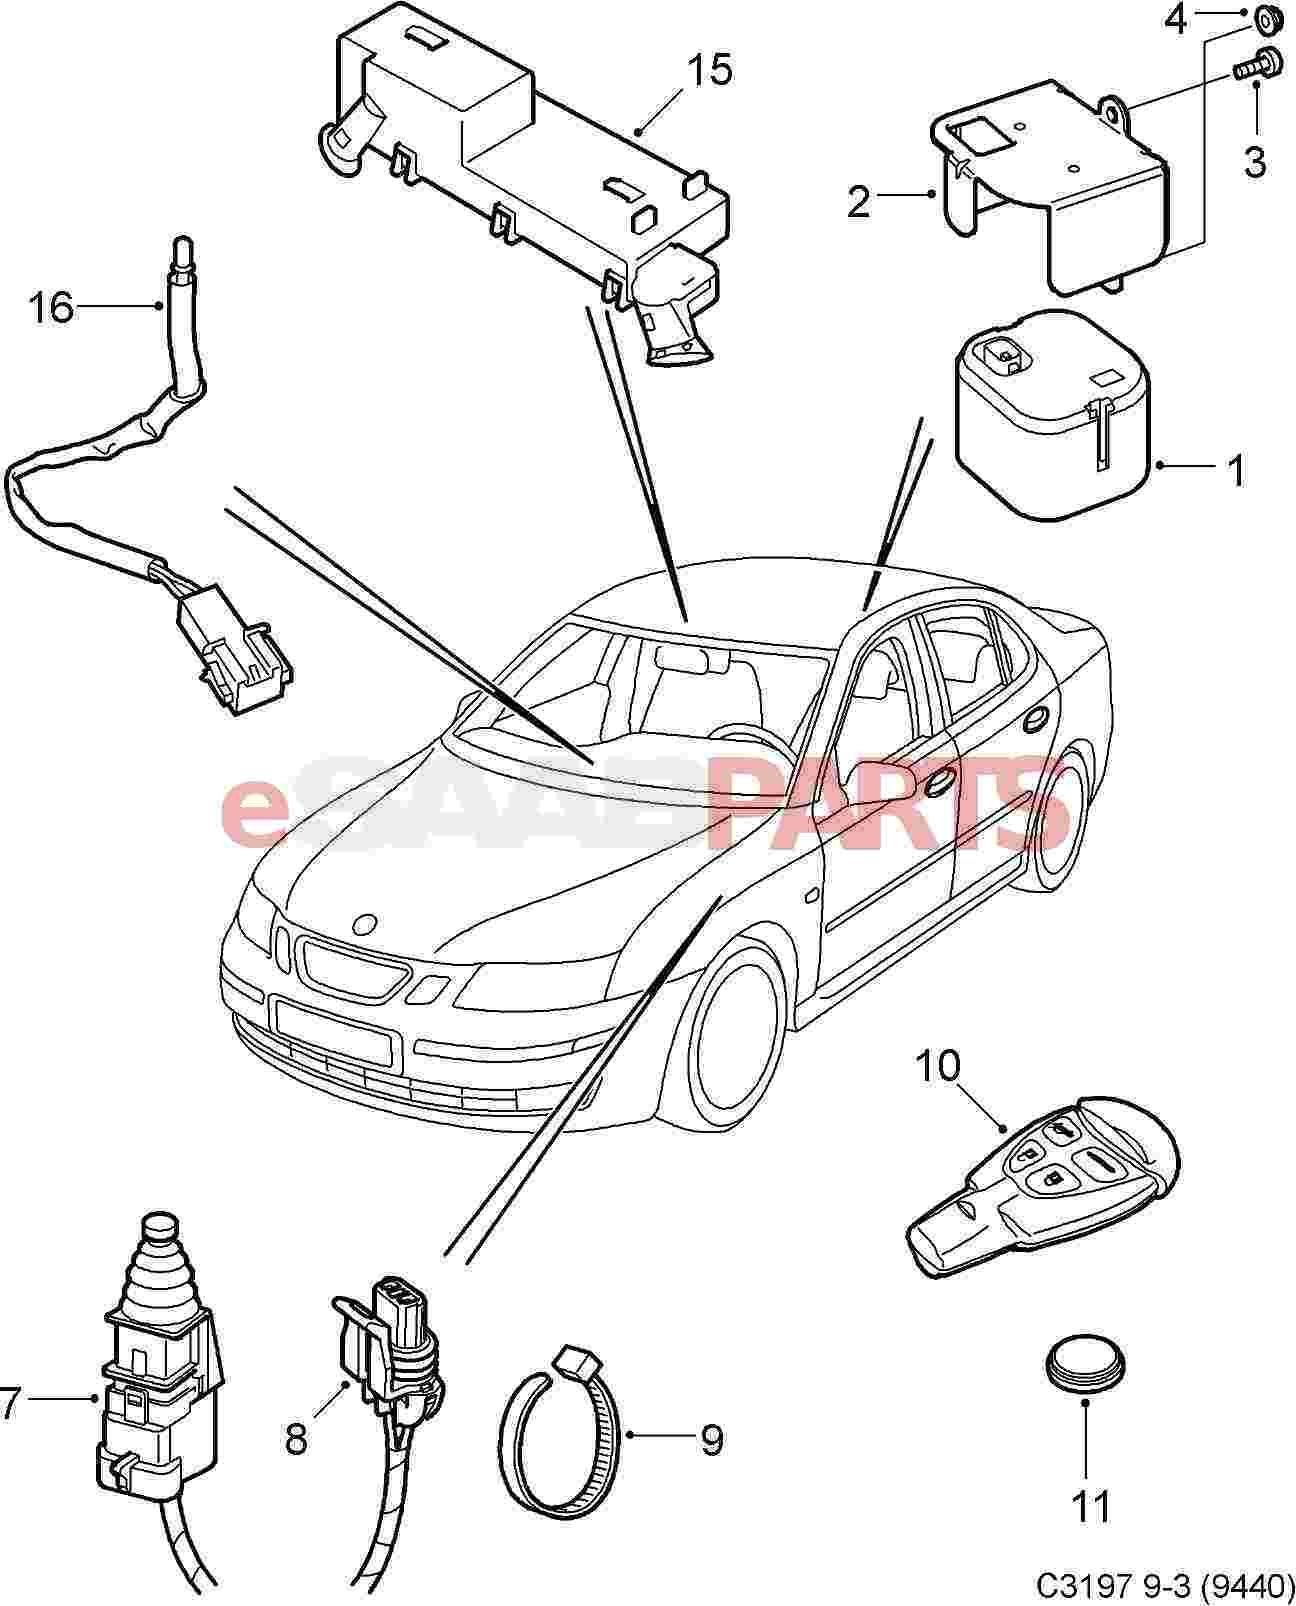 2003 Saab 9 3 Parts Wiring Diagrams together with Sab sa93 intpnl pg1 together with  on 2003 saab linear sedan